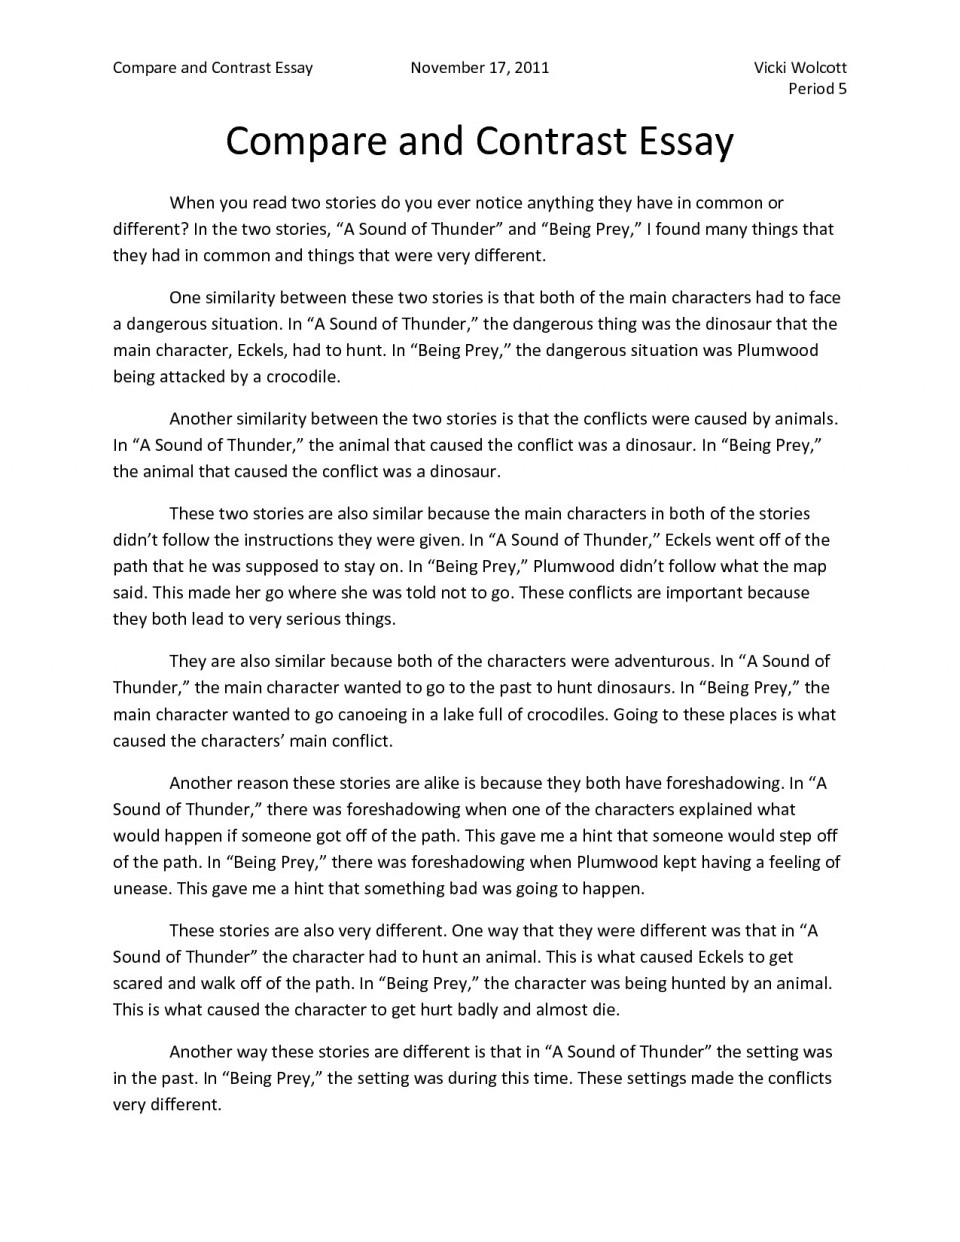 006 Essay Example Compare Contrast An Of And Comparison Ideas Fascinating Topics Graphic Organizer Julius Caesar Answers High School 960